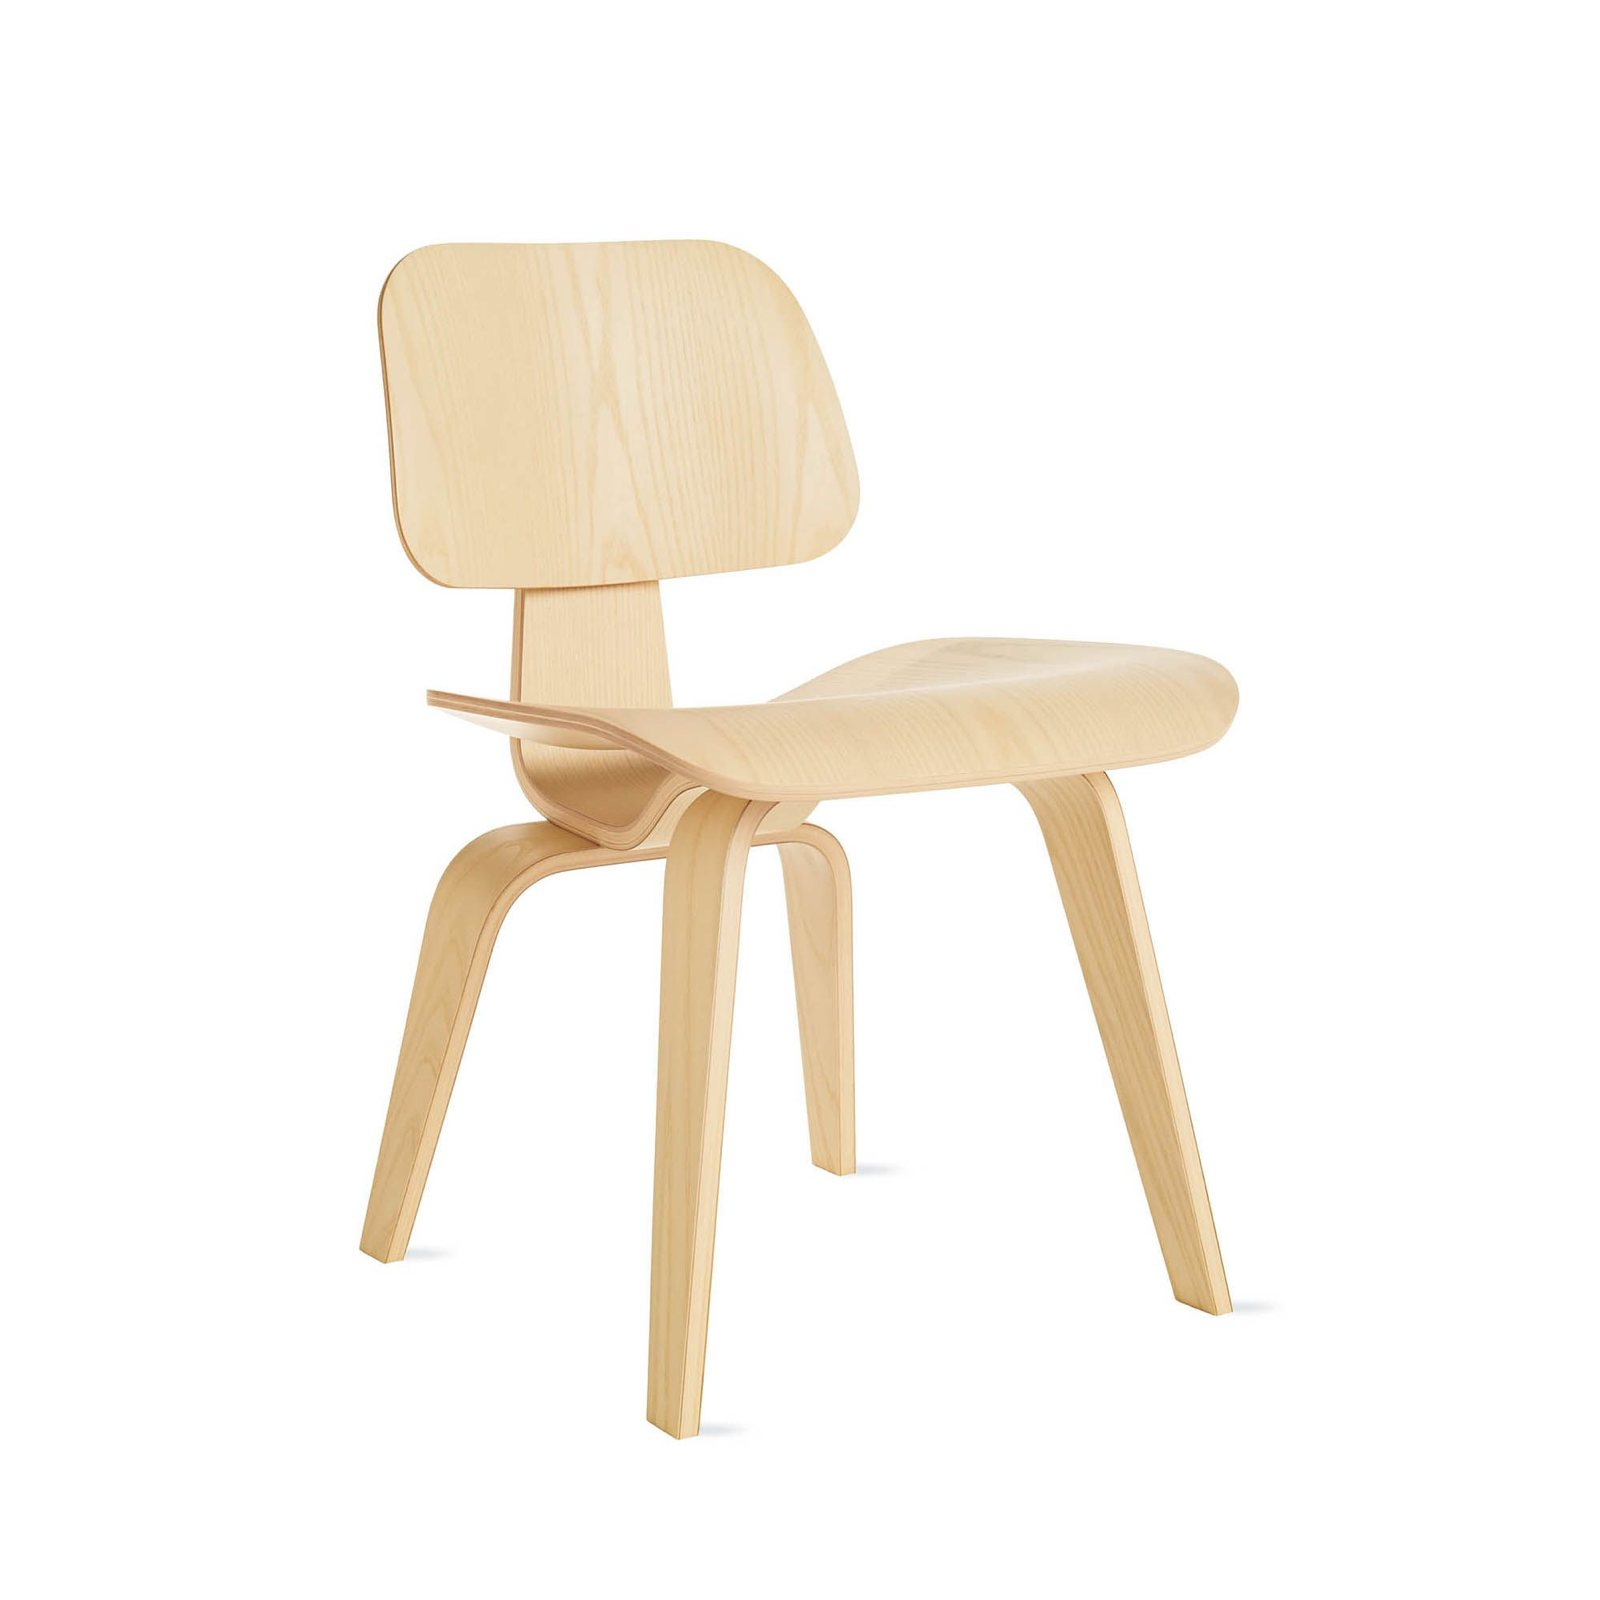 Eames Molded Plywood Dining Chair Wood Base, White Ash.